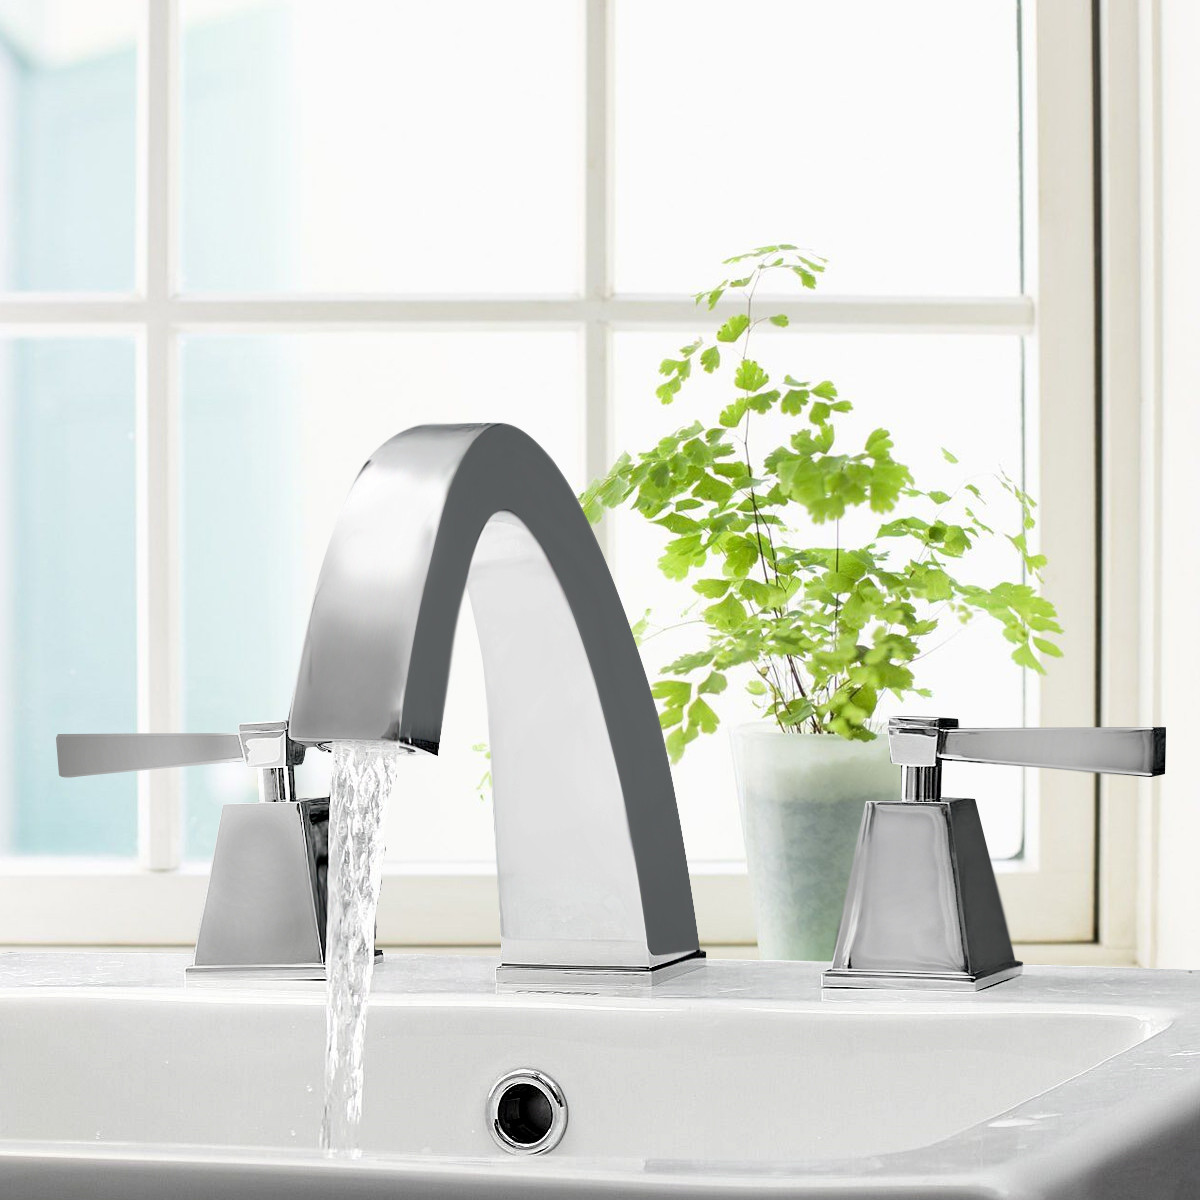 Chrome Double Handle Two Holes Bathroom Faucet Modern Vessel Sink Mixer Tap Hot and Cold Decked Mounted 3pcs SeparatingChrome Double Handle Two Holes Bathroom Faucet Modern Vessel Sink Mixer Tap Hot and Cold Decked Mounted 3pcs Separating